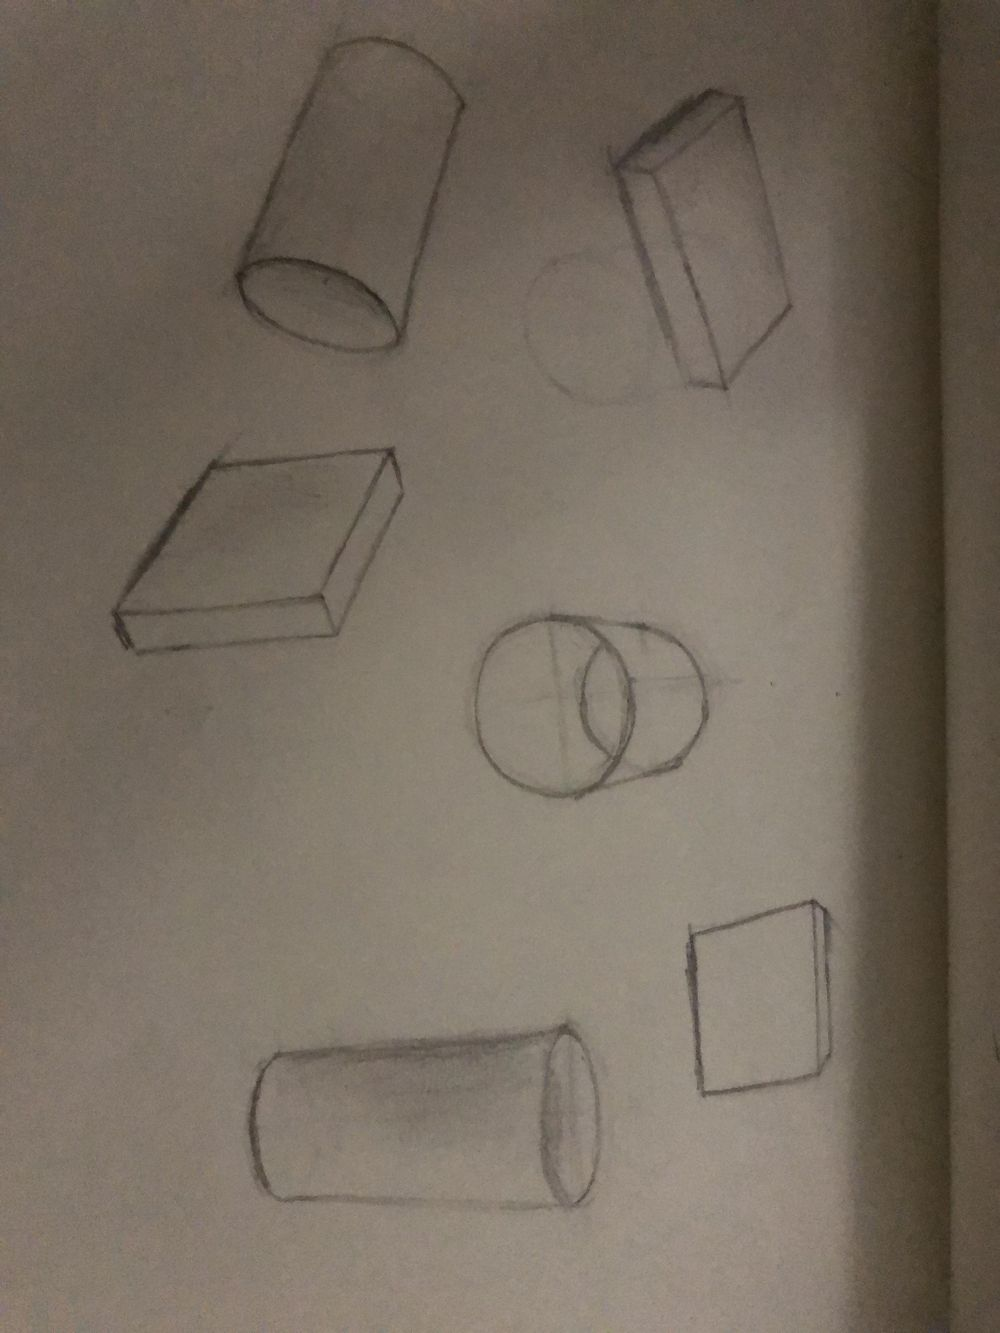 Perpective sketches - image 4 - student project